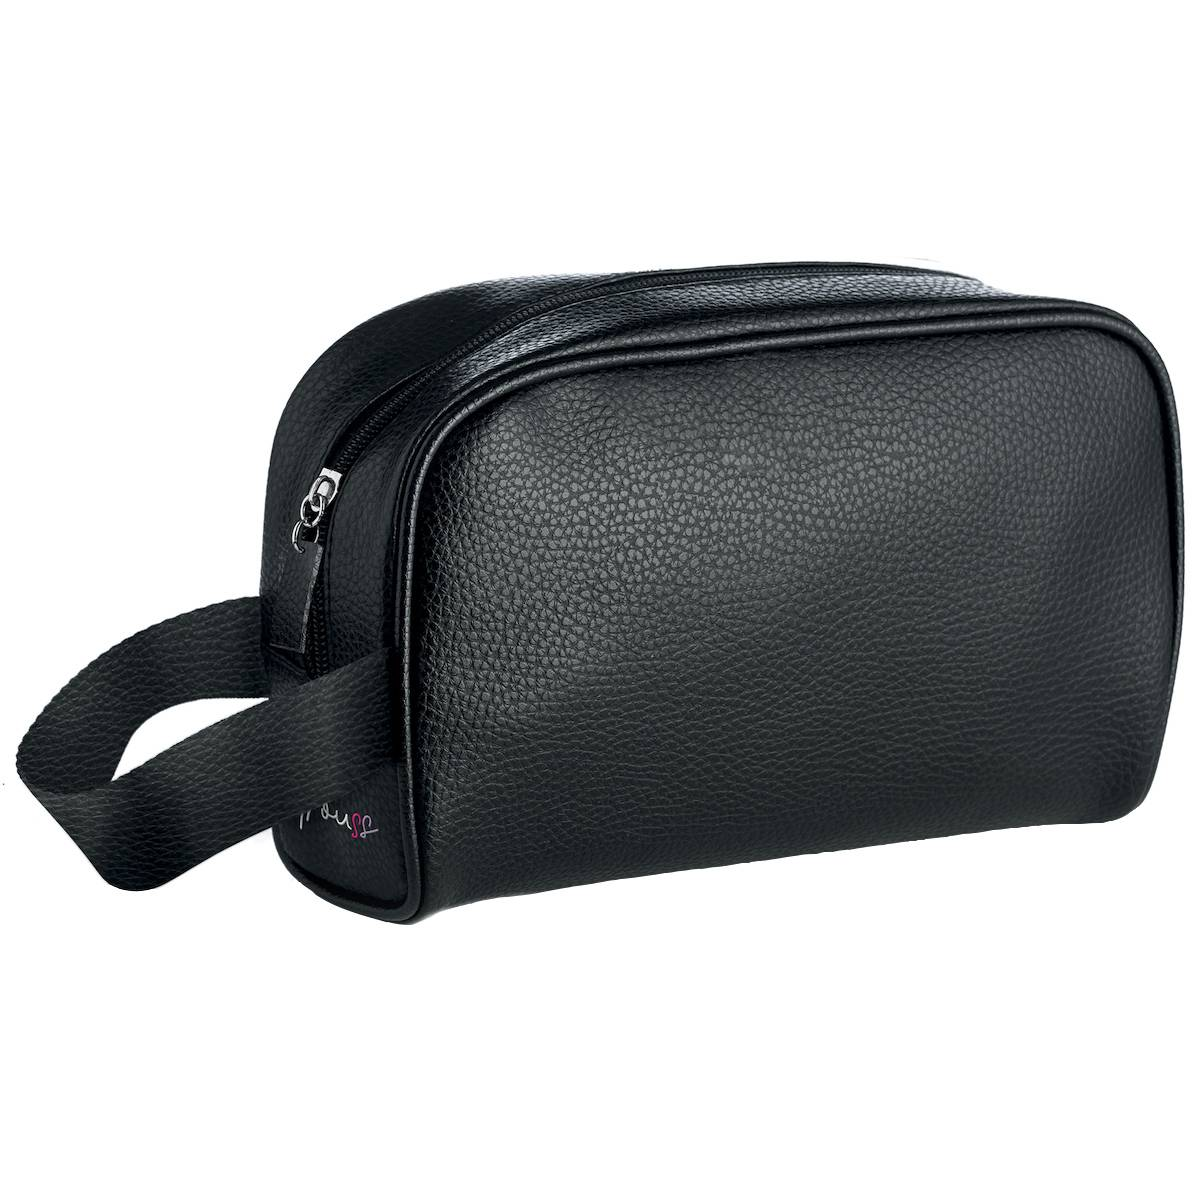 TROUSS 74 BEAUTYCASE PORTATUTTO NERO UOMO/DONNA